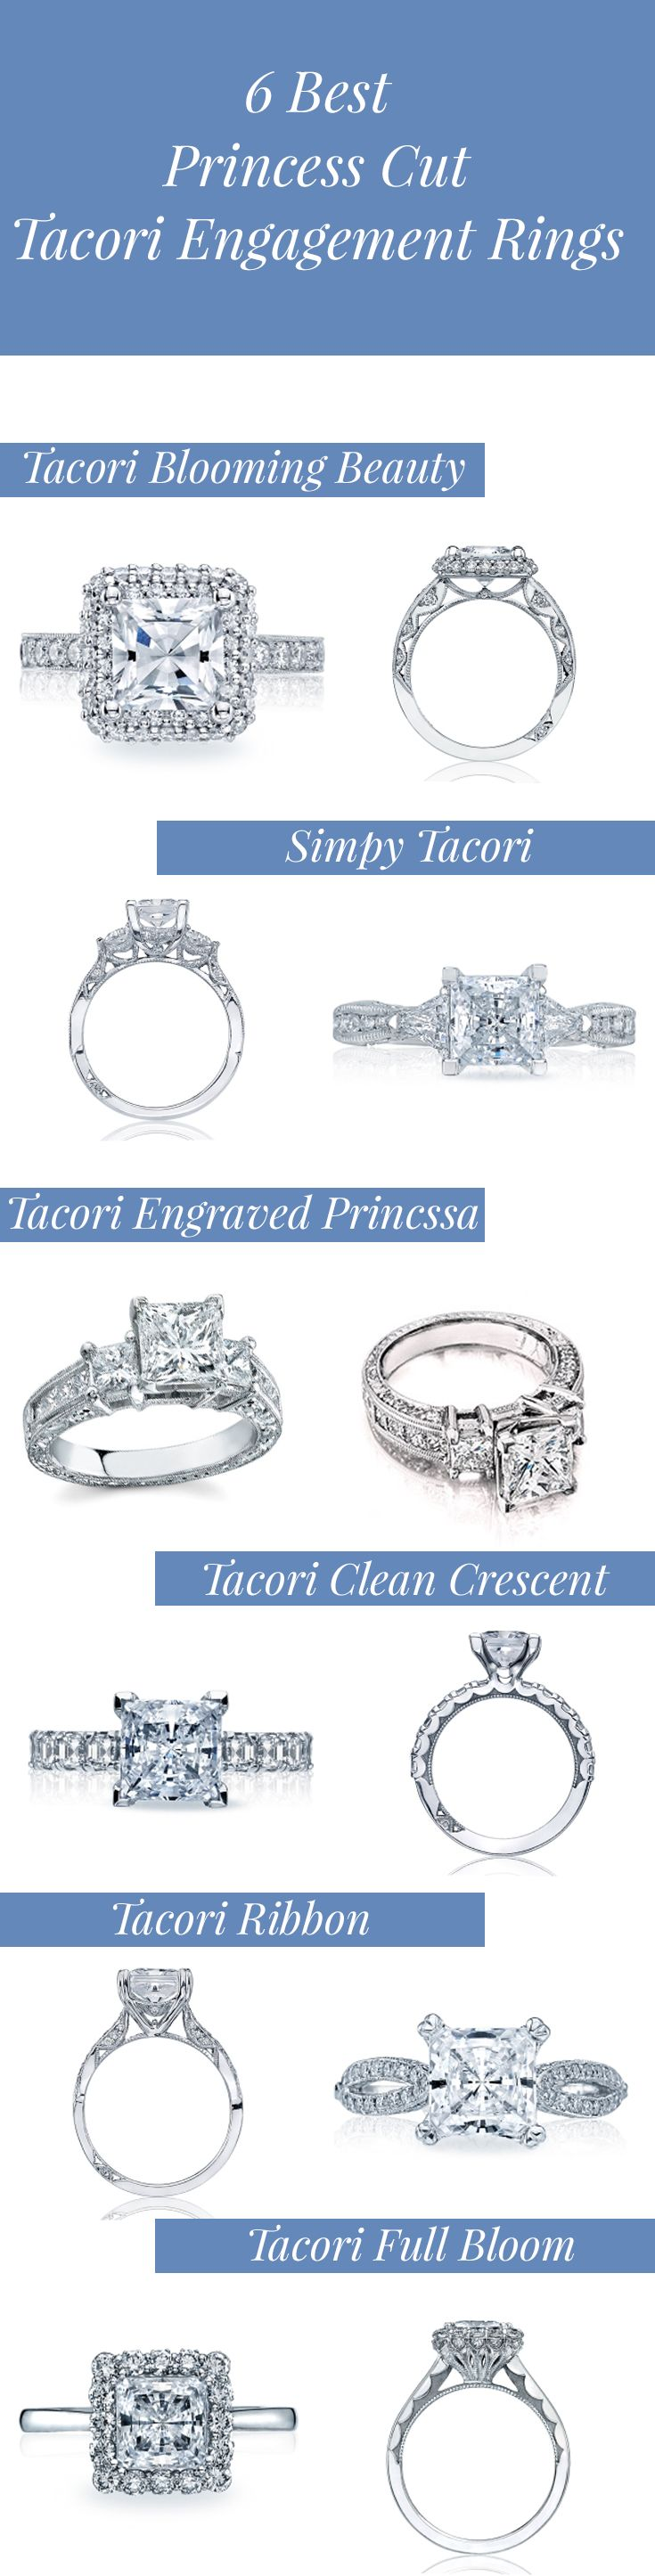 151 best Engagement Rings images on Pinterest